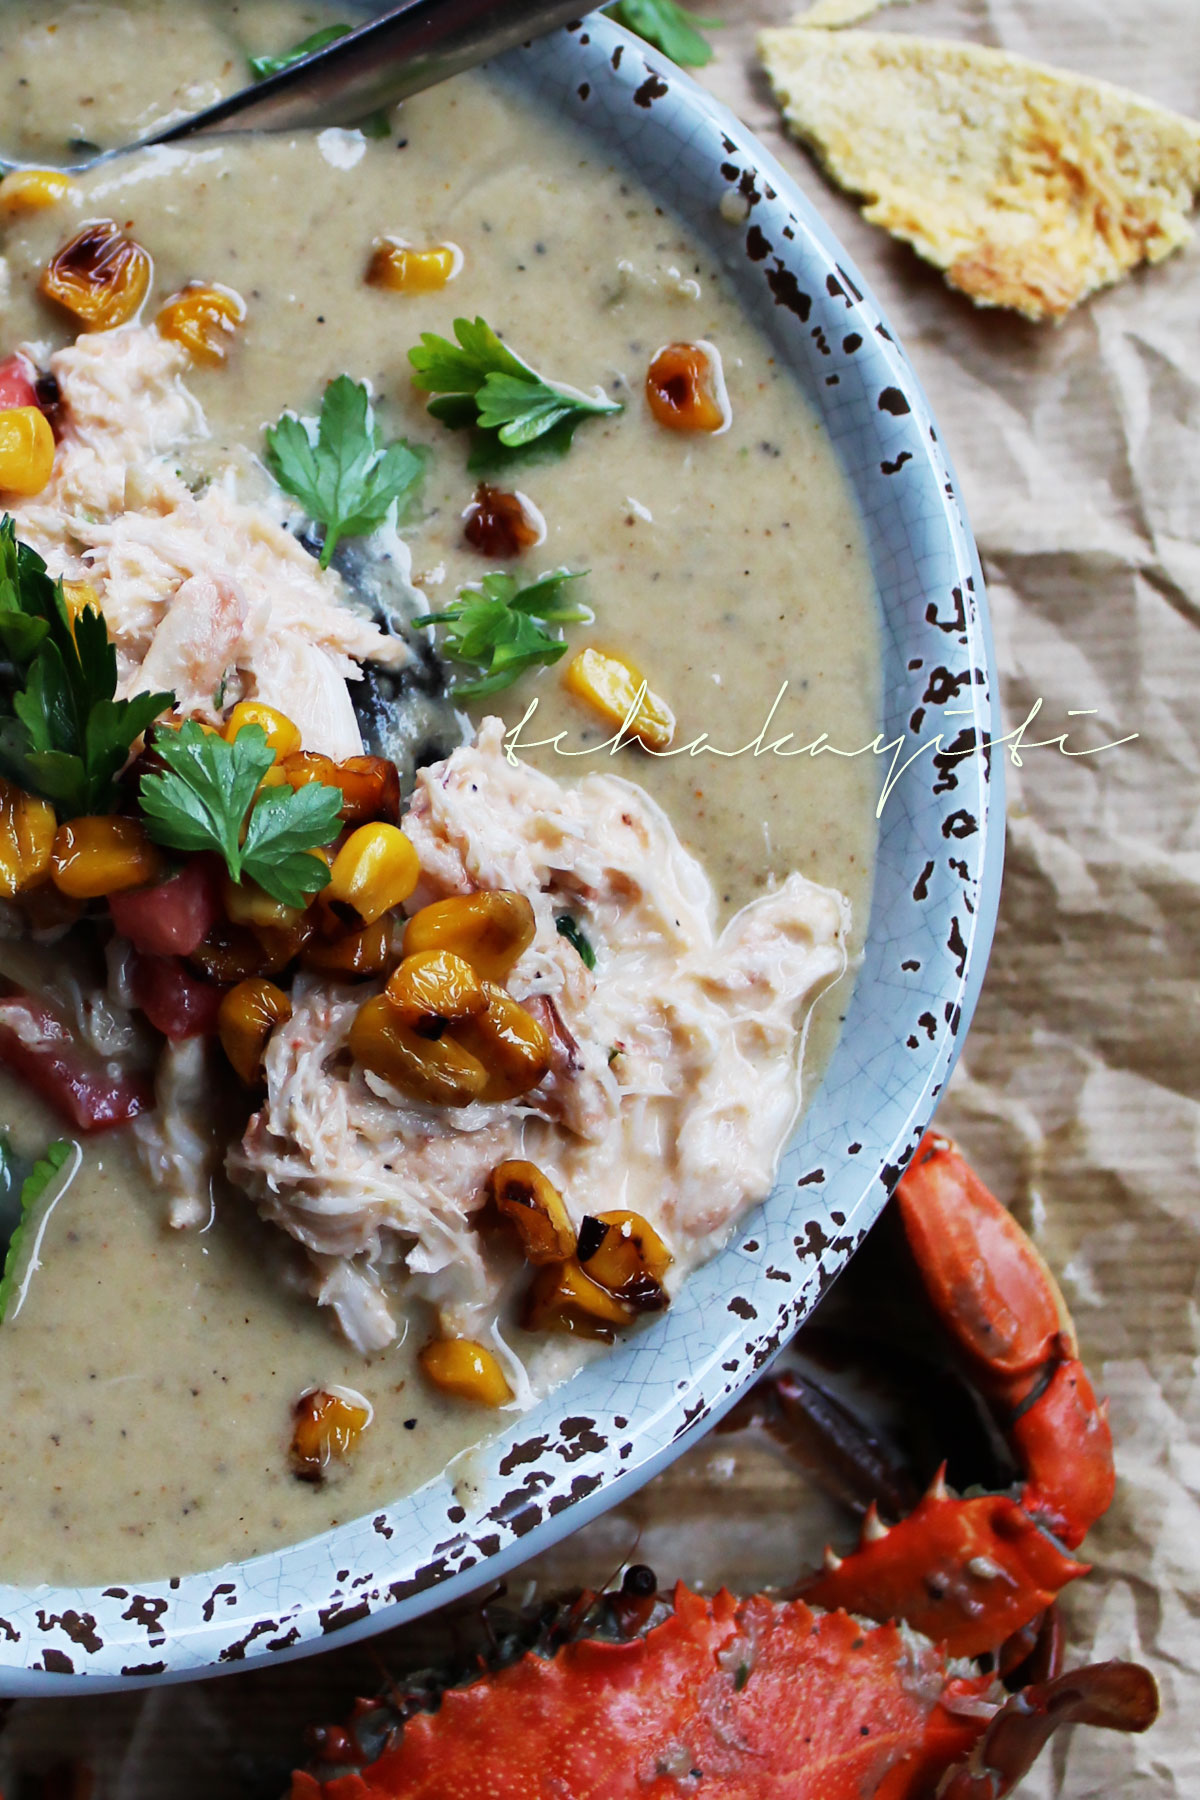 A recipe for a creamy mirliton or chayote soup enhanced with flavors of shrimp and crab. | tchakayiti.com